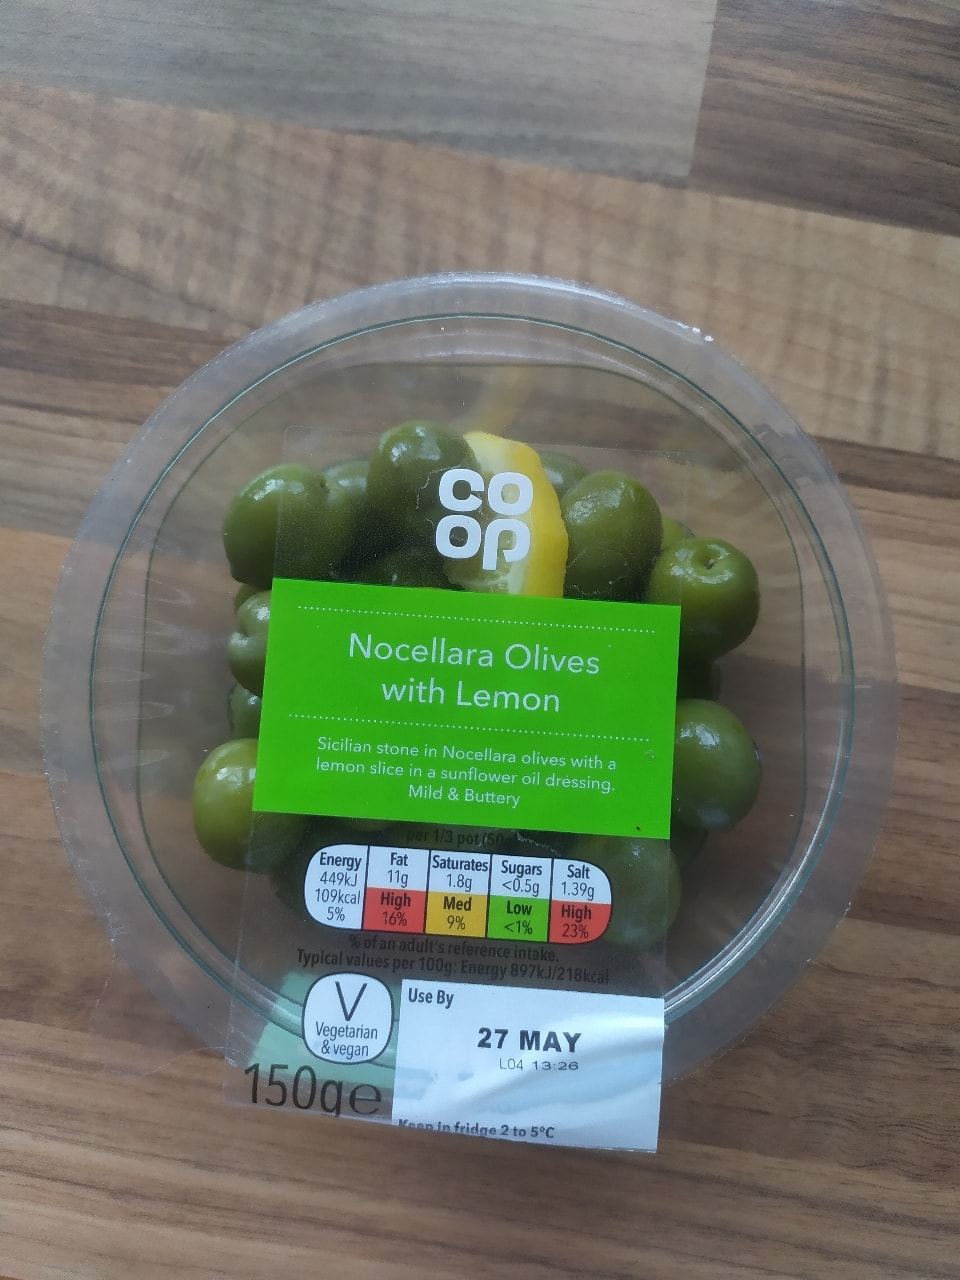 Nocellara Olives with lemon